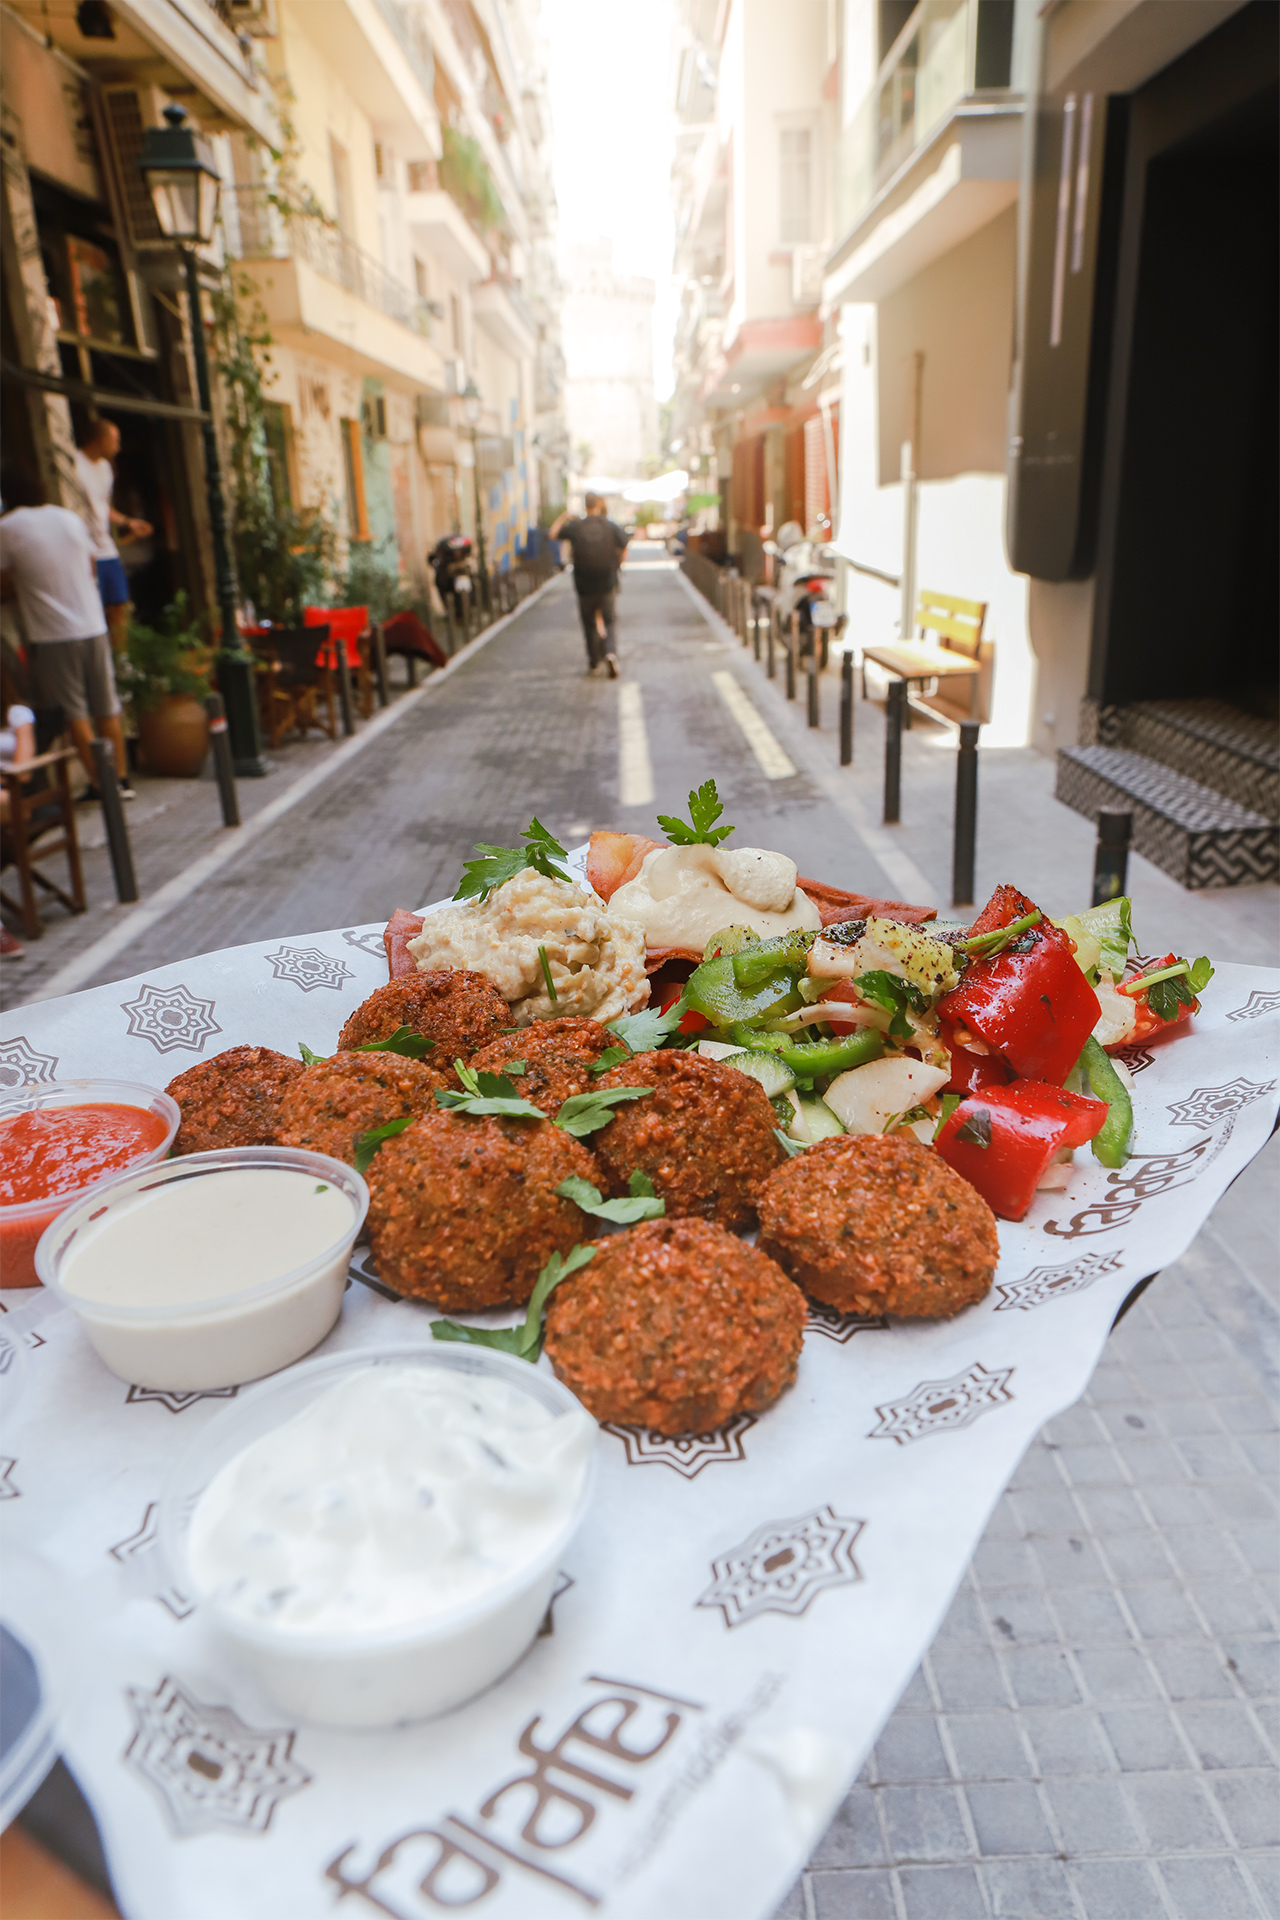 There is a variety of street food options in Thessaloniki